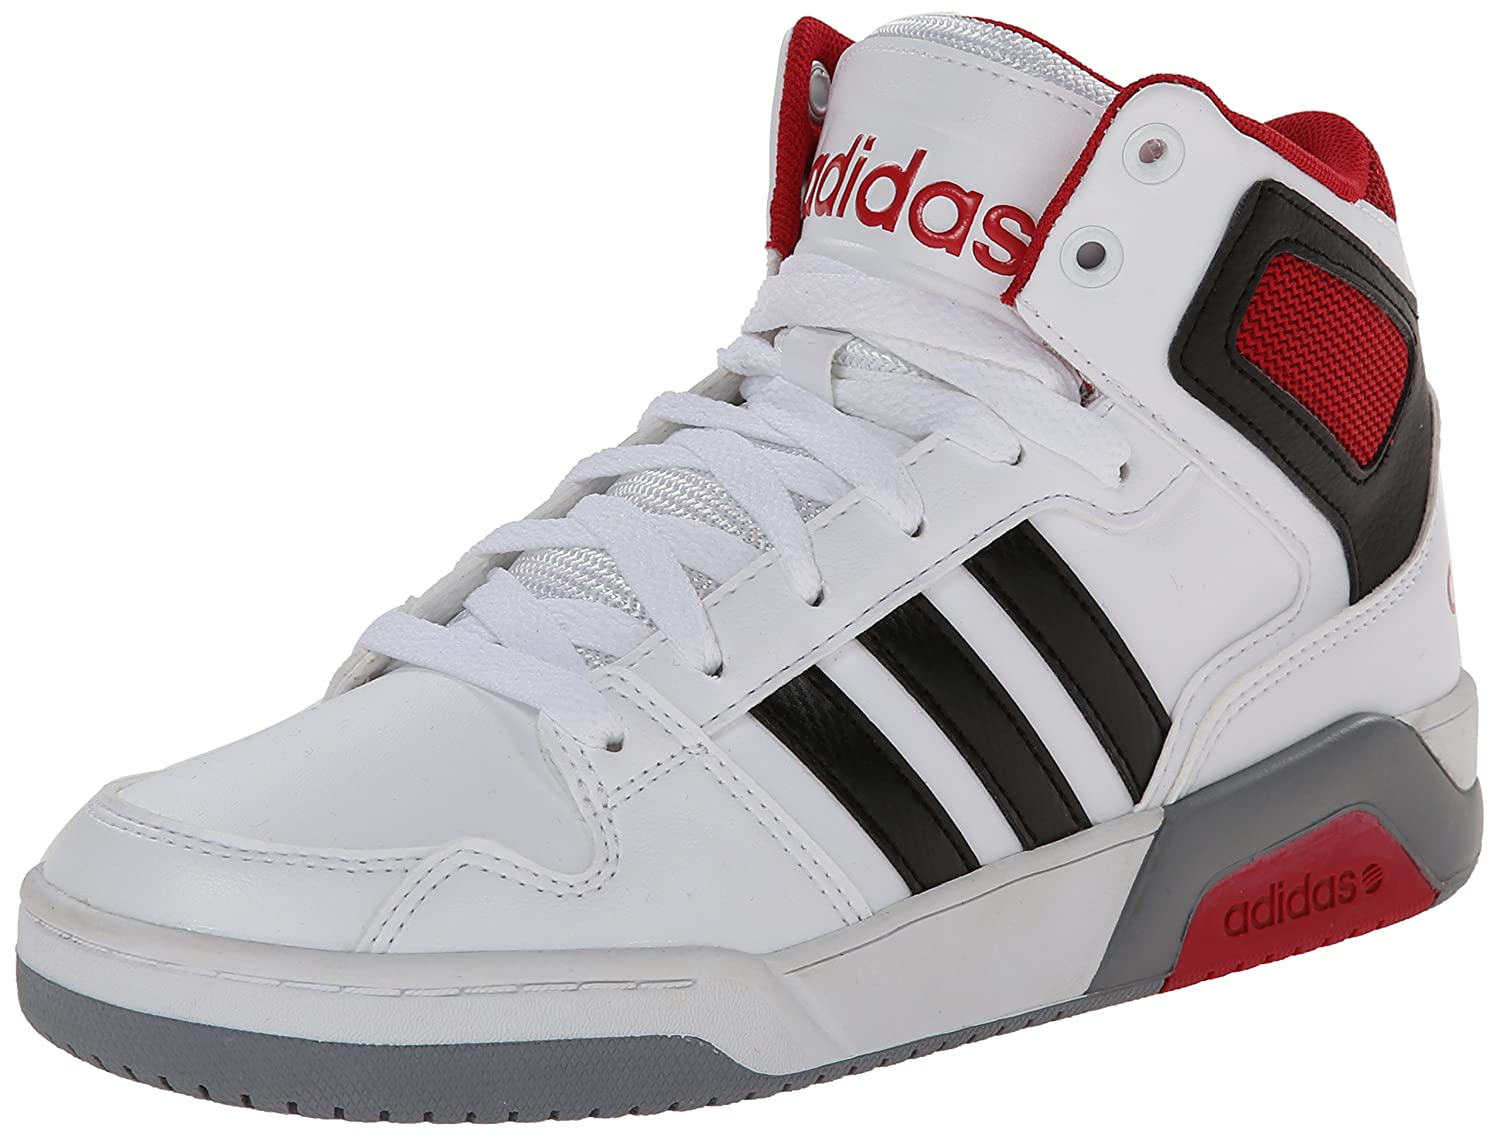 adidas NEO BB9TIS K Basketball Shoe (Little Kid/Big Kid) adidas originals superstar stormtrooper cf c basketball shoe little kid